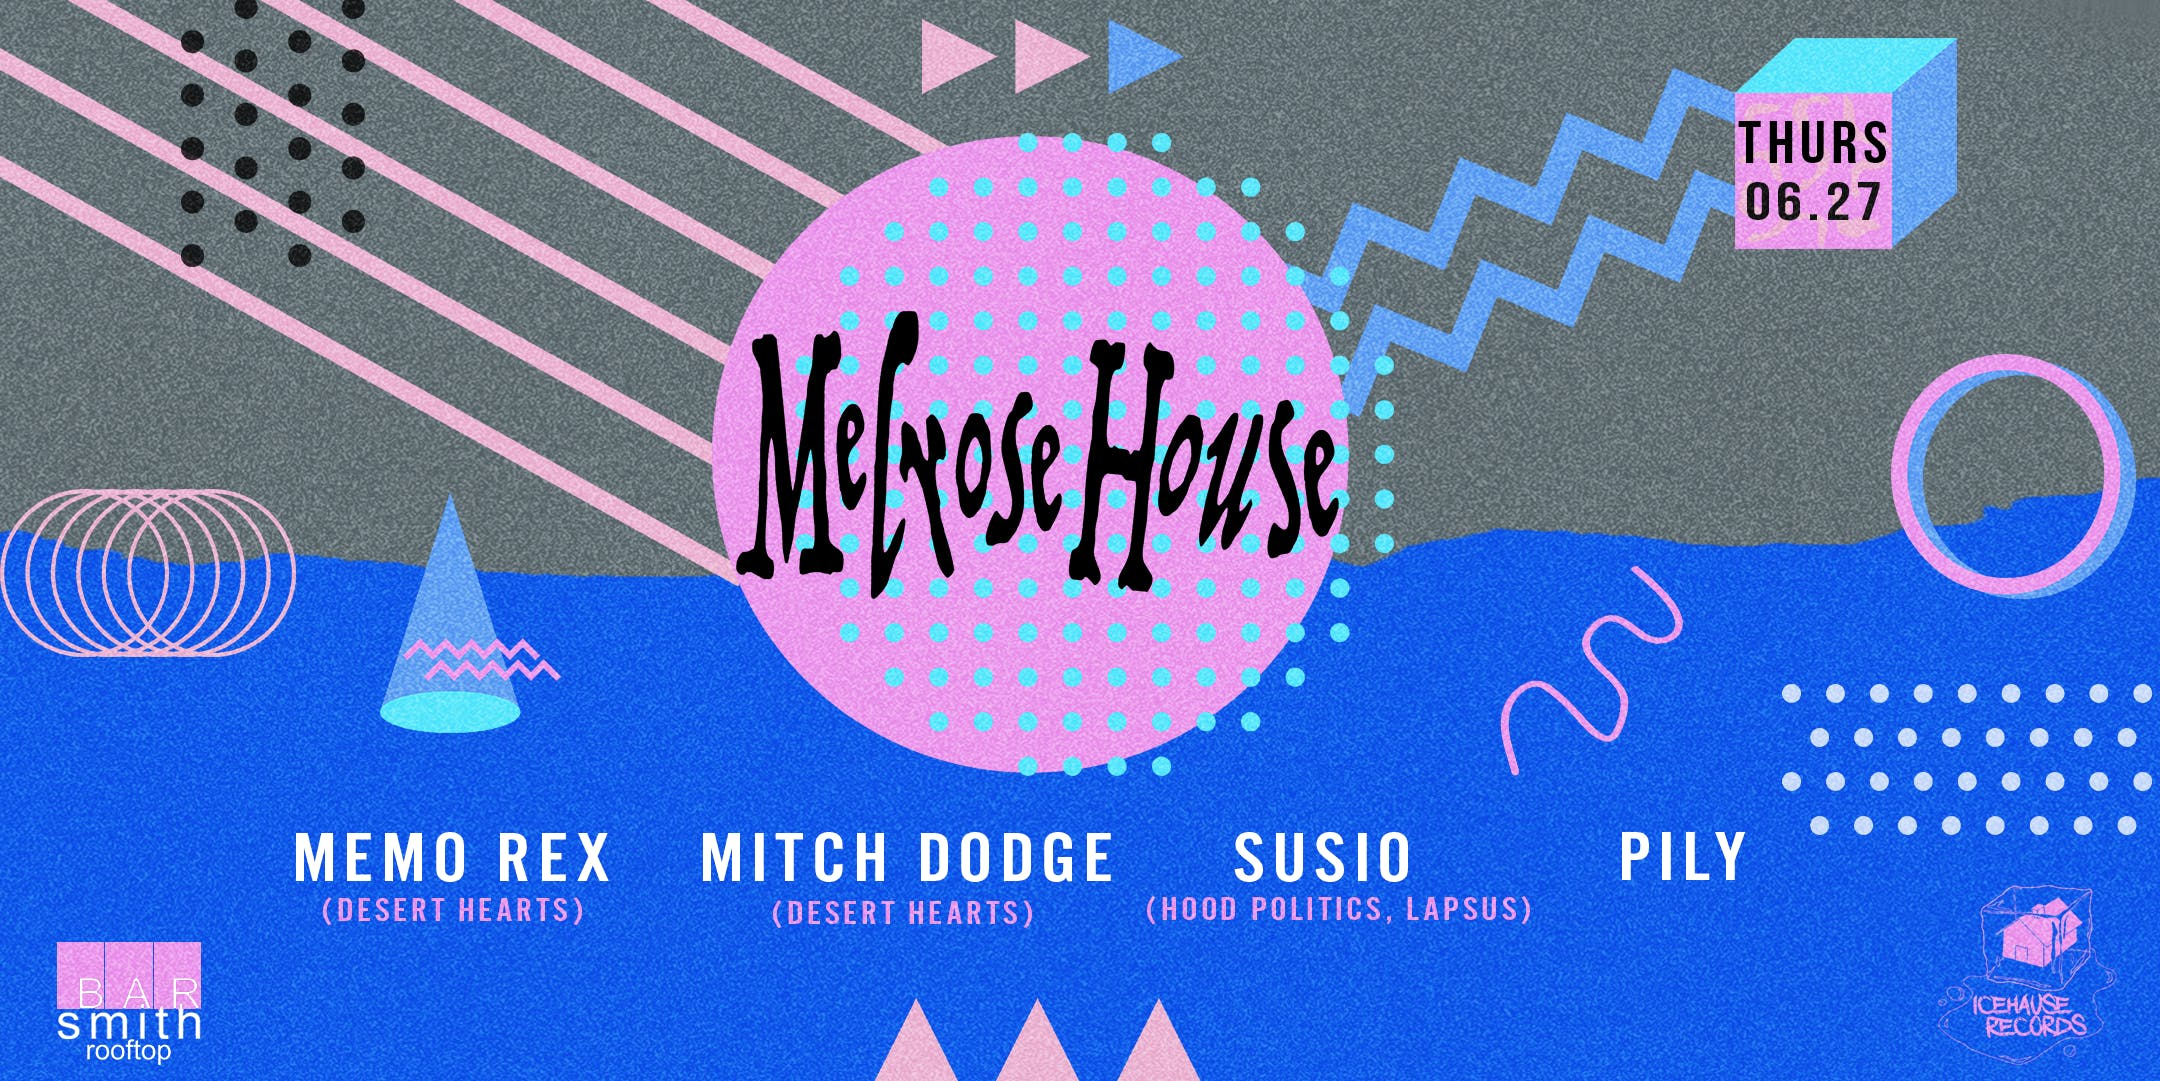 Melrose House with Memo Rex, Mitch Dodge & Susio